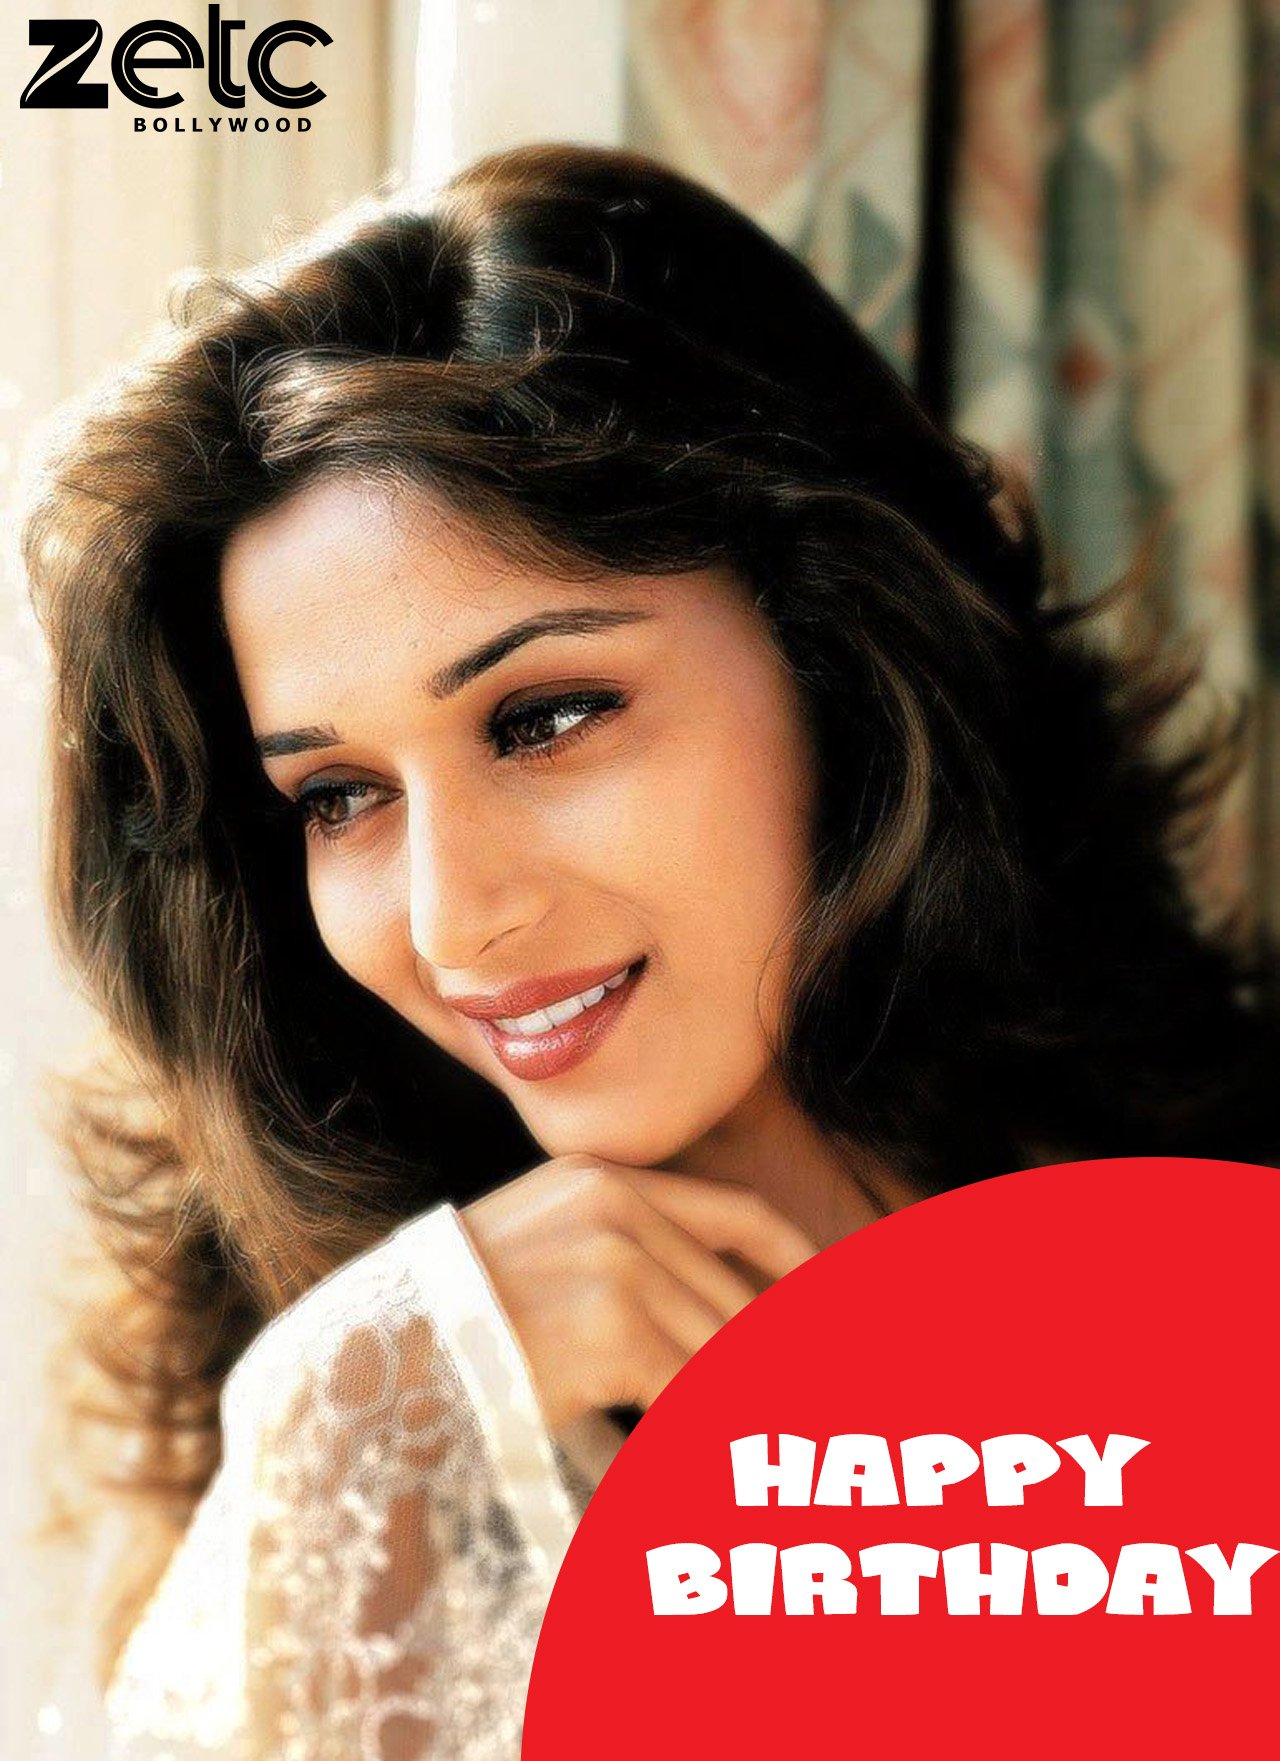 Happy  birthday  my  favourite  star   Keep  your  smile  continue # madhuri  dixit